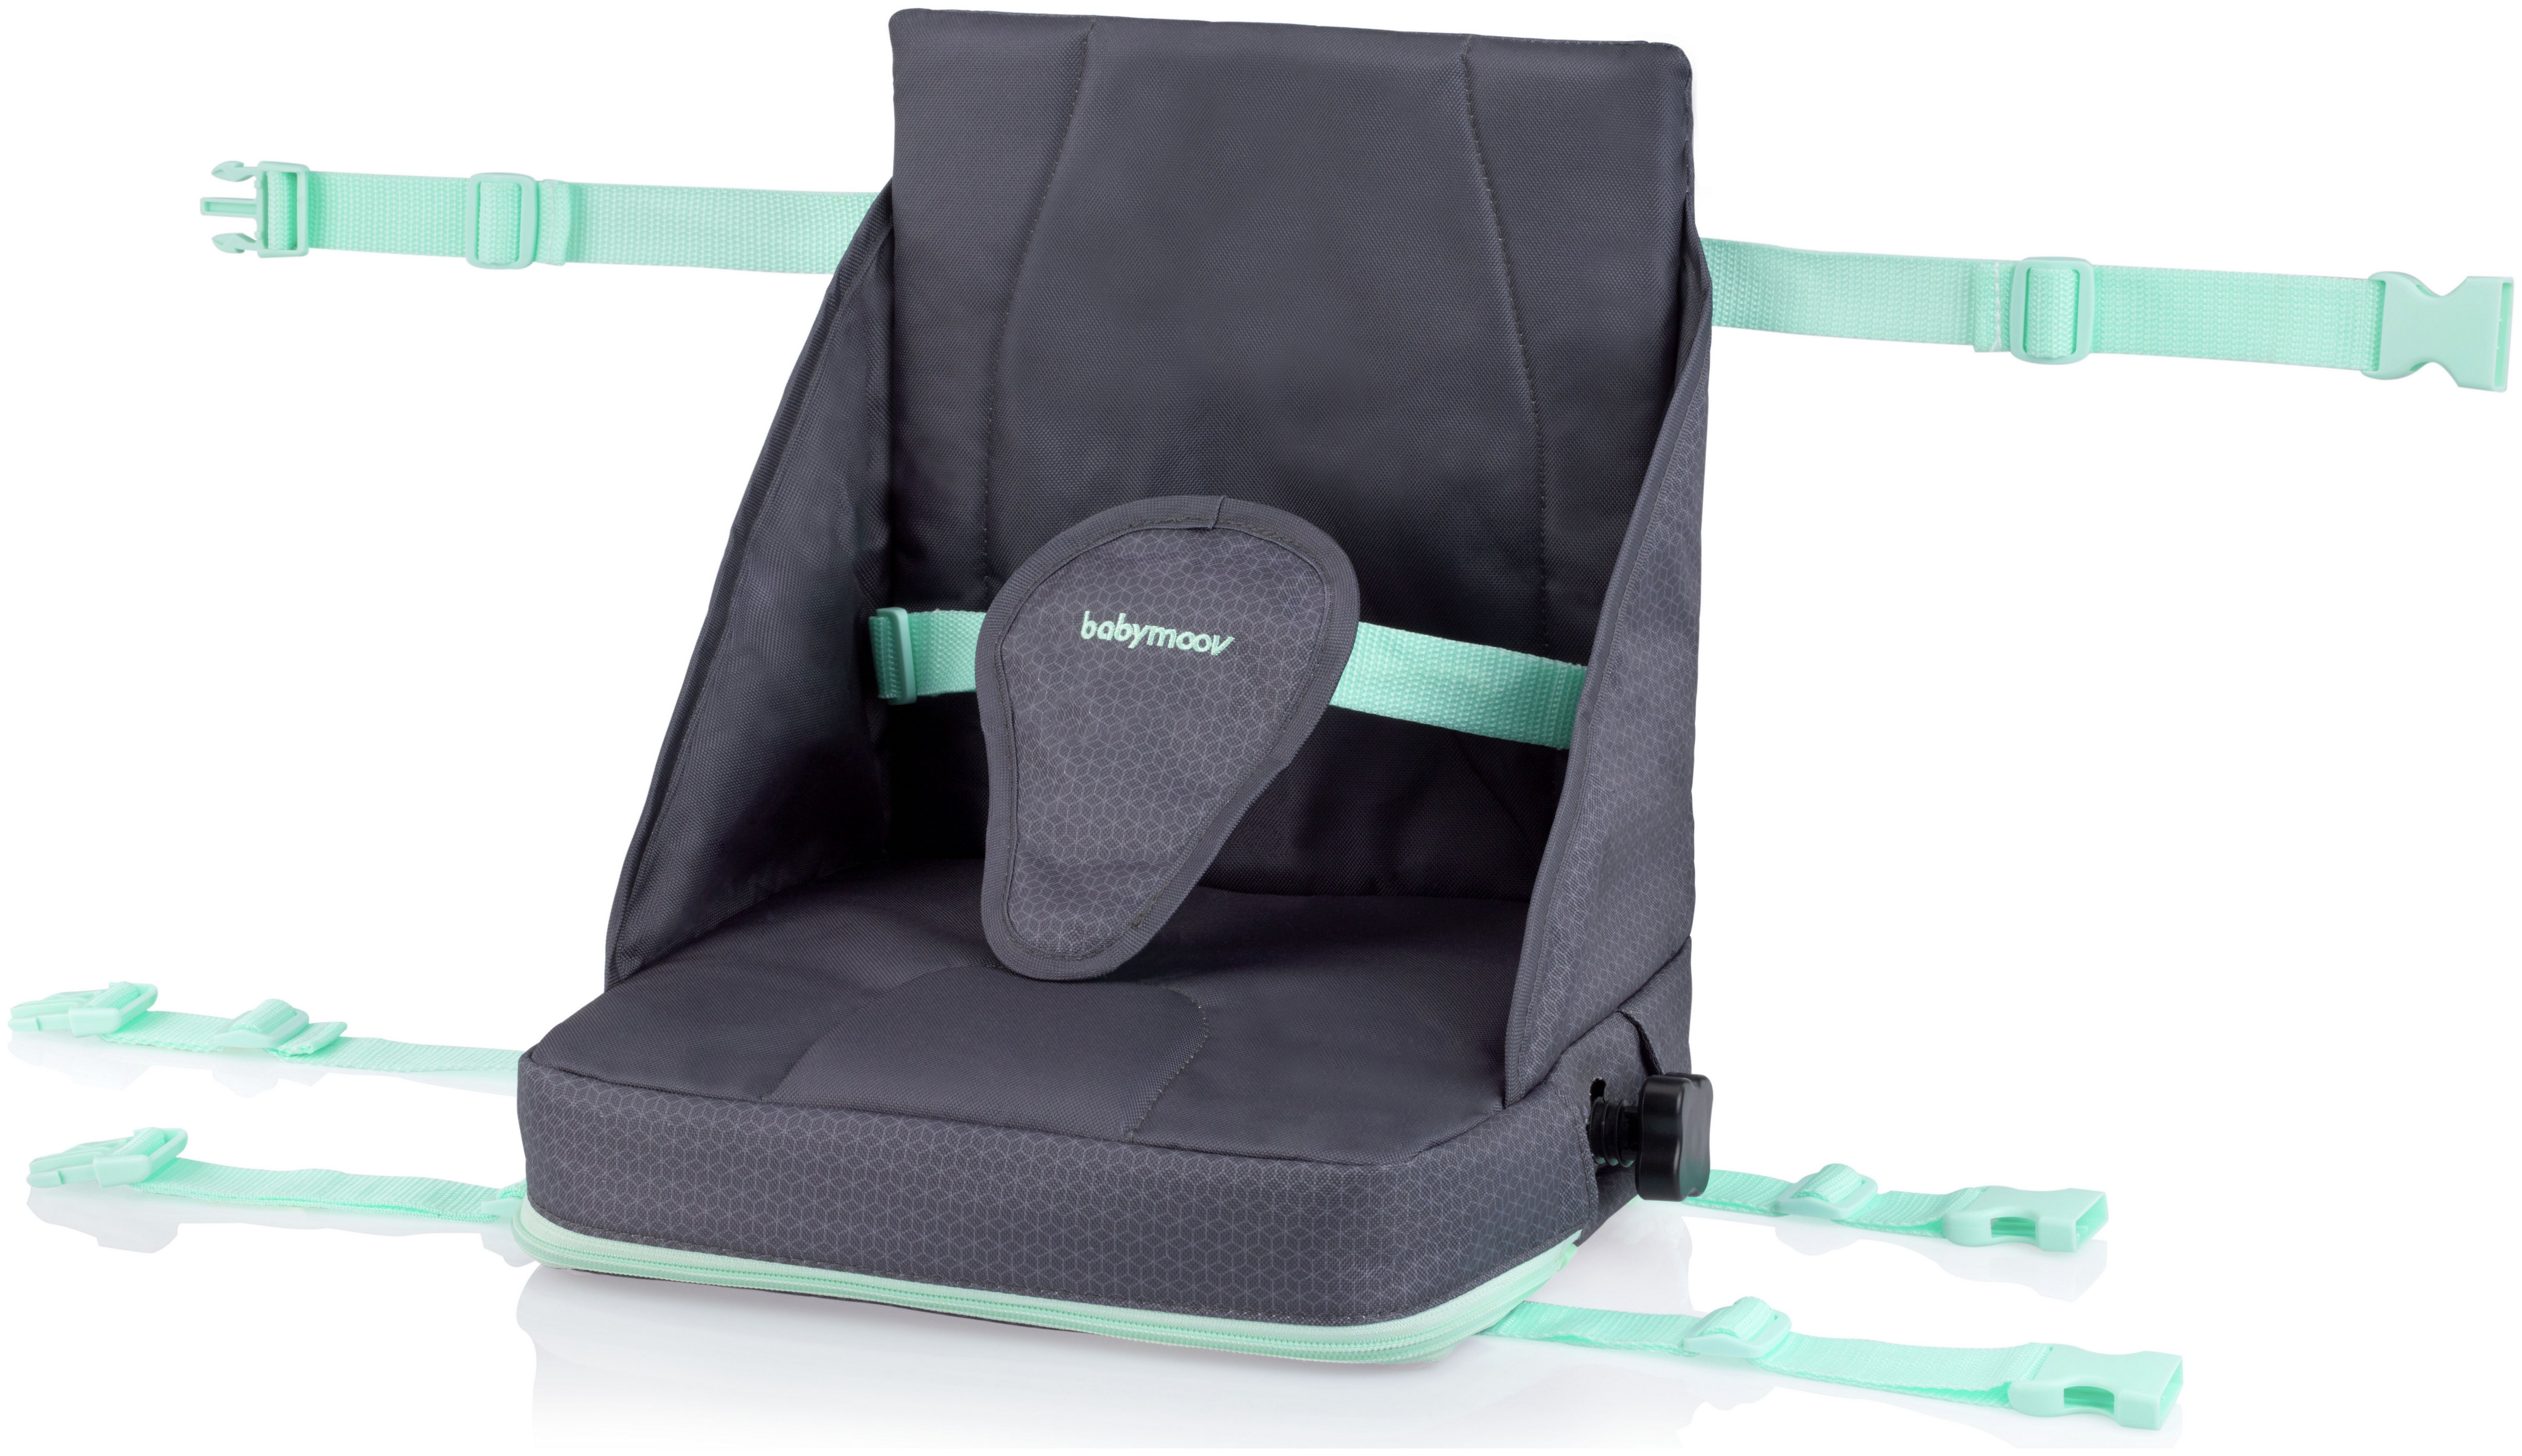 Image of Babymoov Up & Go Booster Seat.